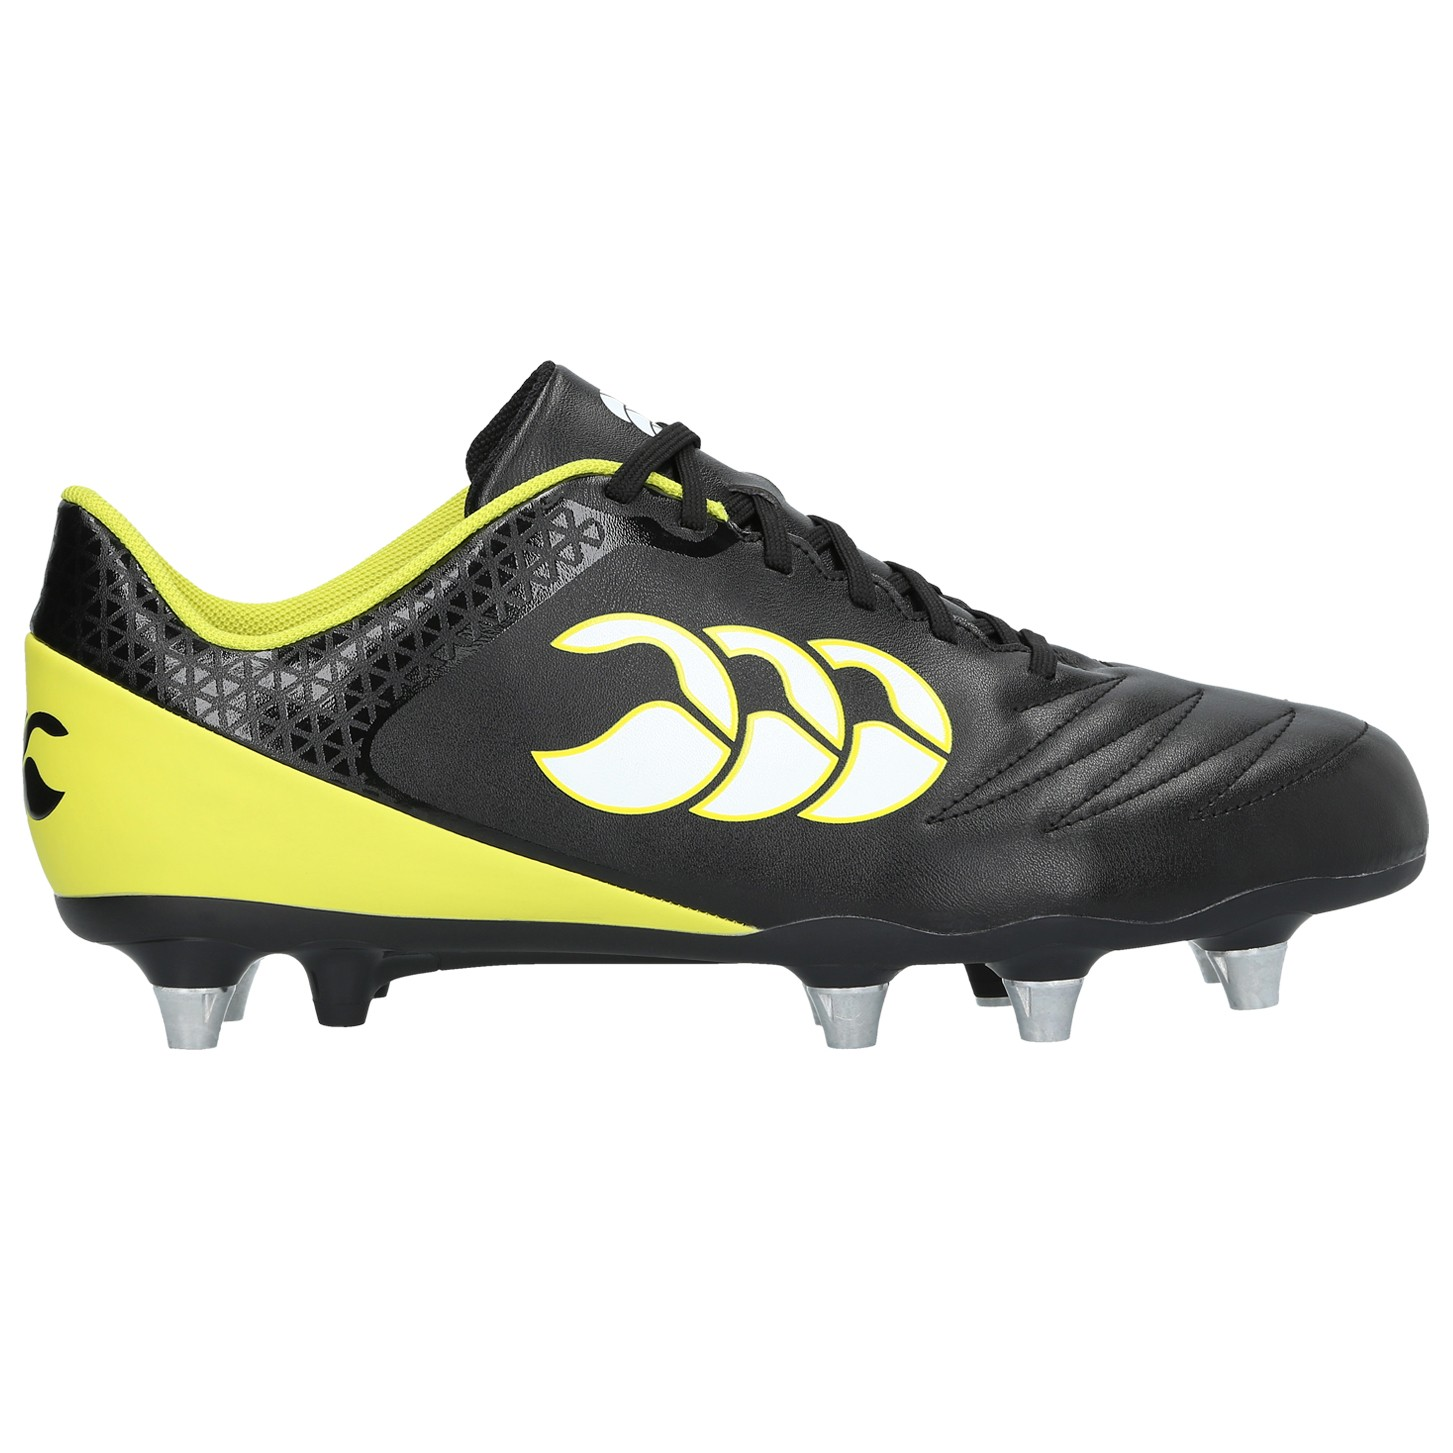 Canterbury Stampede 2.0 SG Rugby Boots 2017 Black/Sulphur Spring